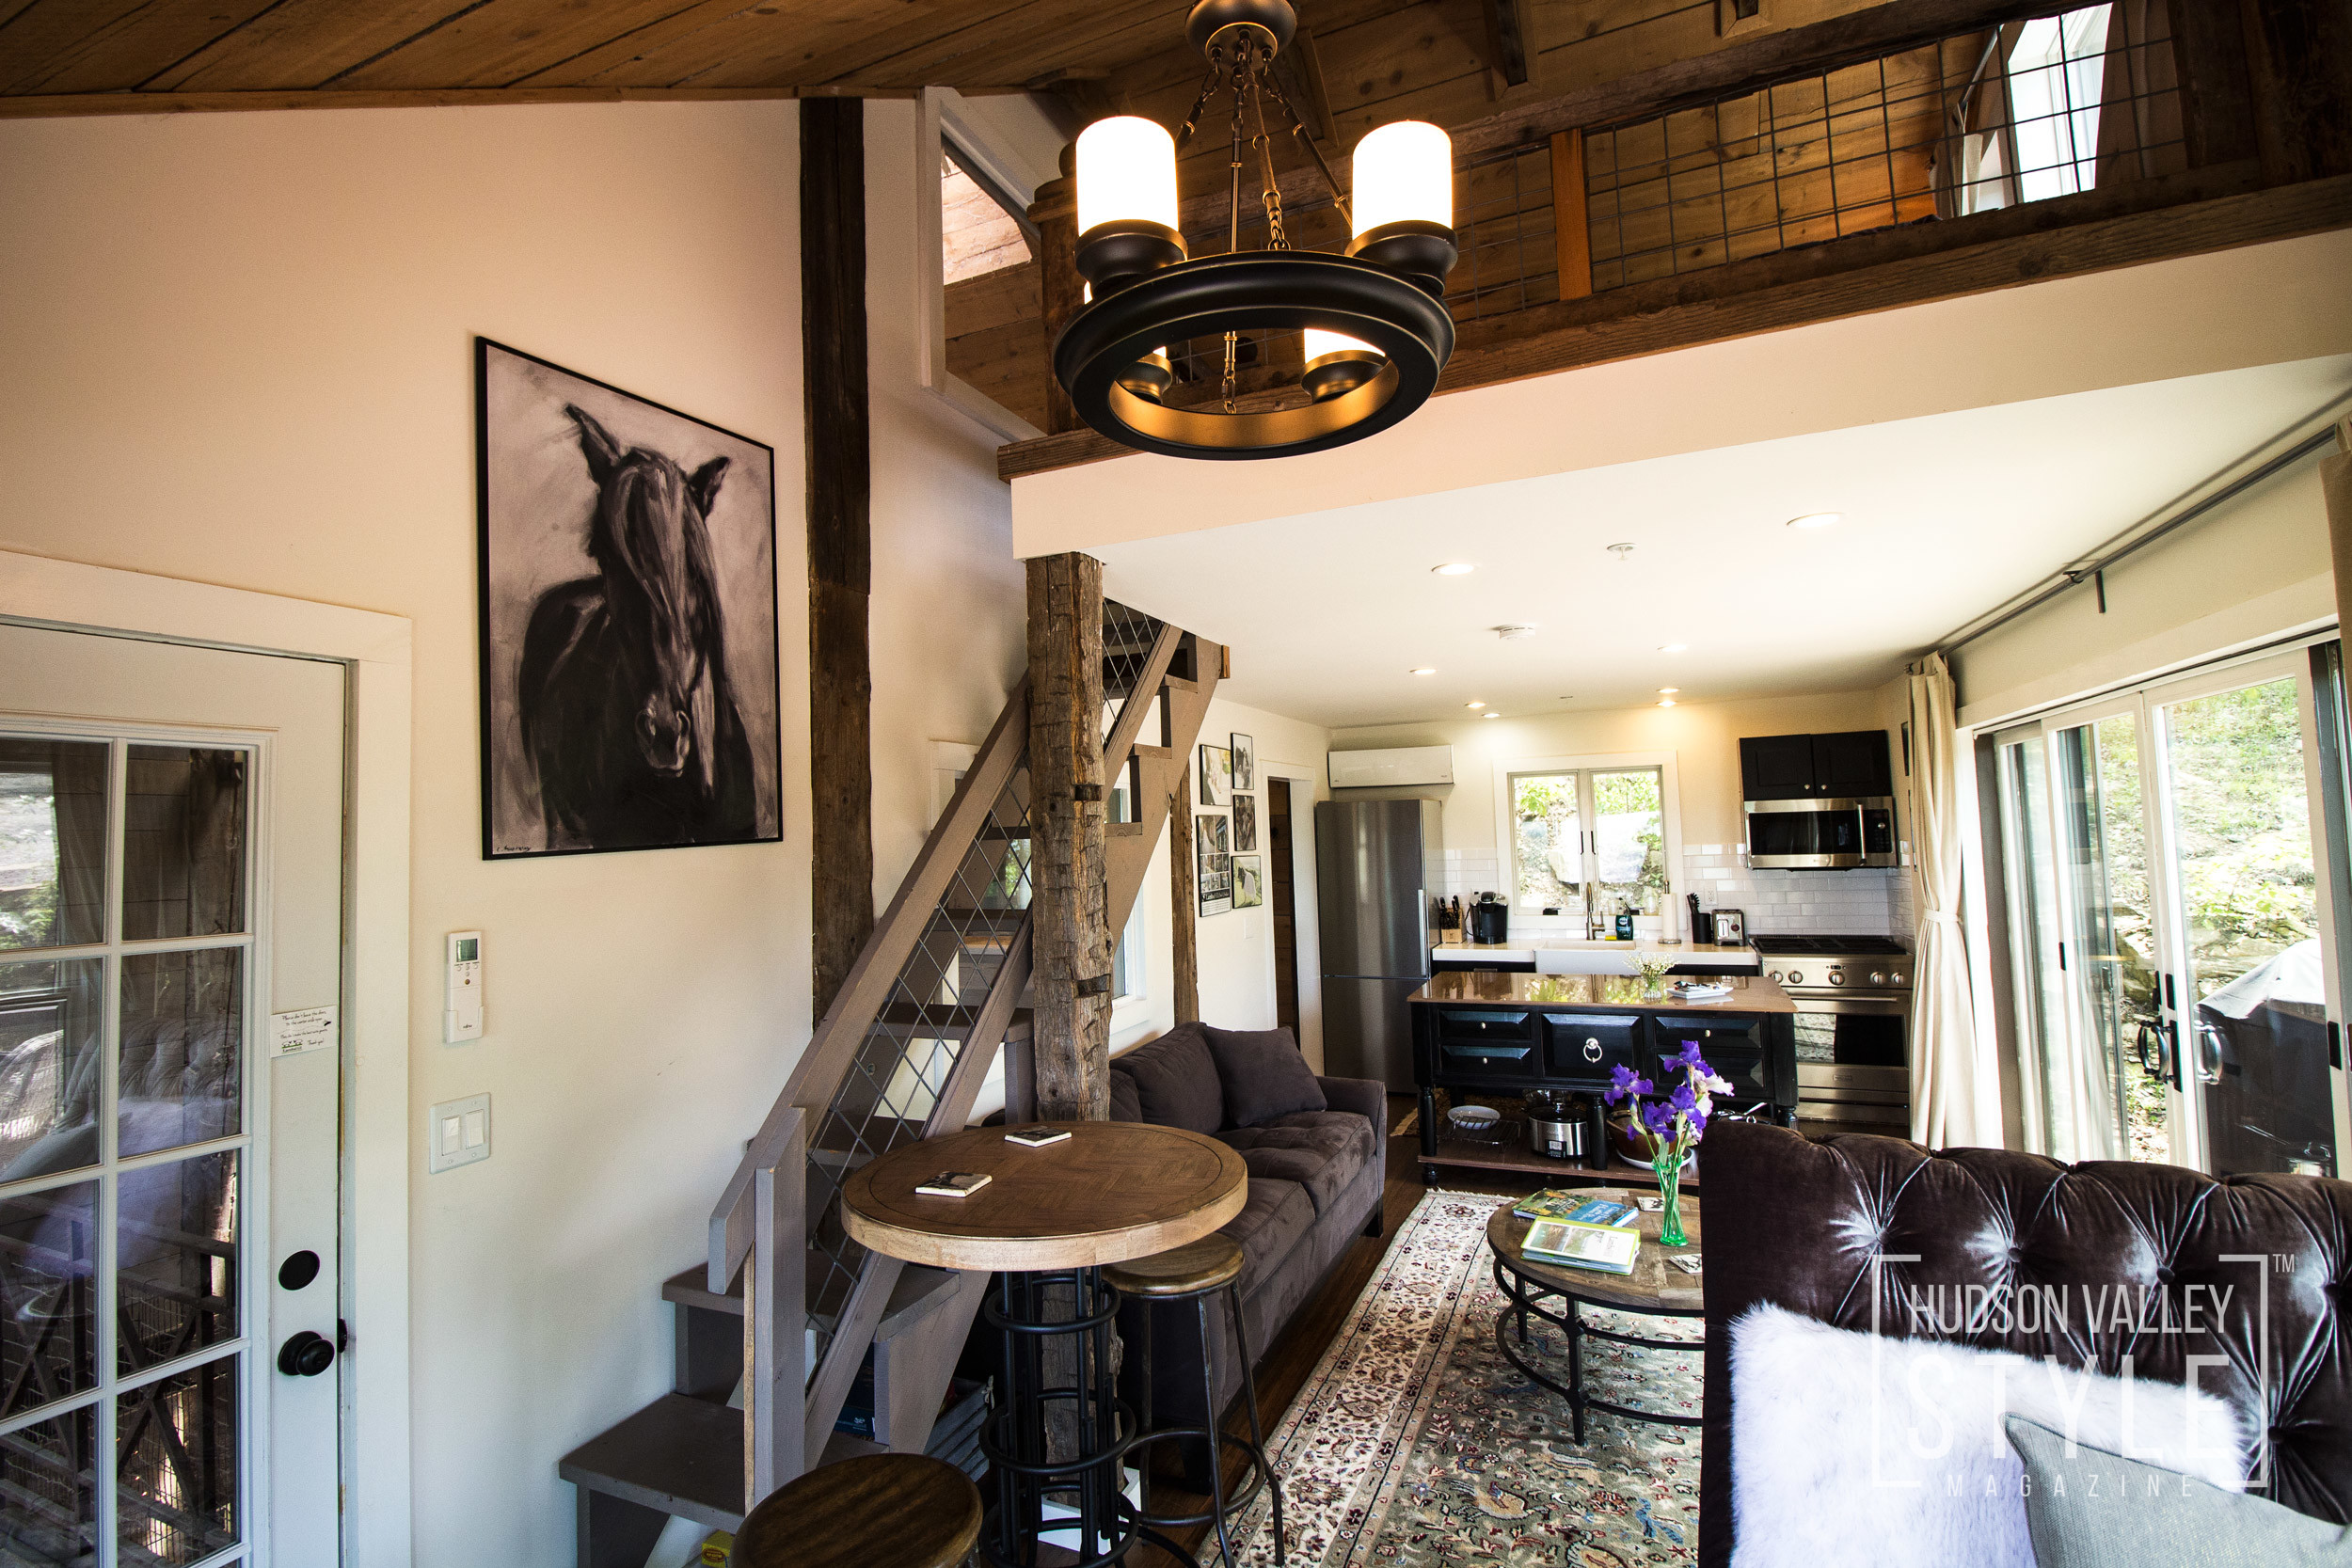 Hudson Valley Style Magazine - Lambs Hill Feature - Duncan Avenue Real Estate Photography Studio